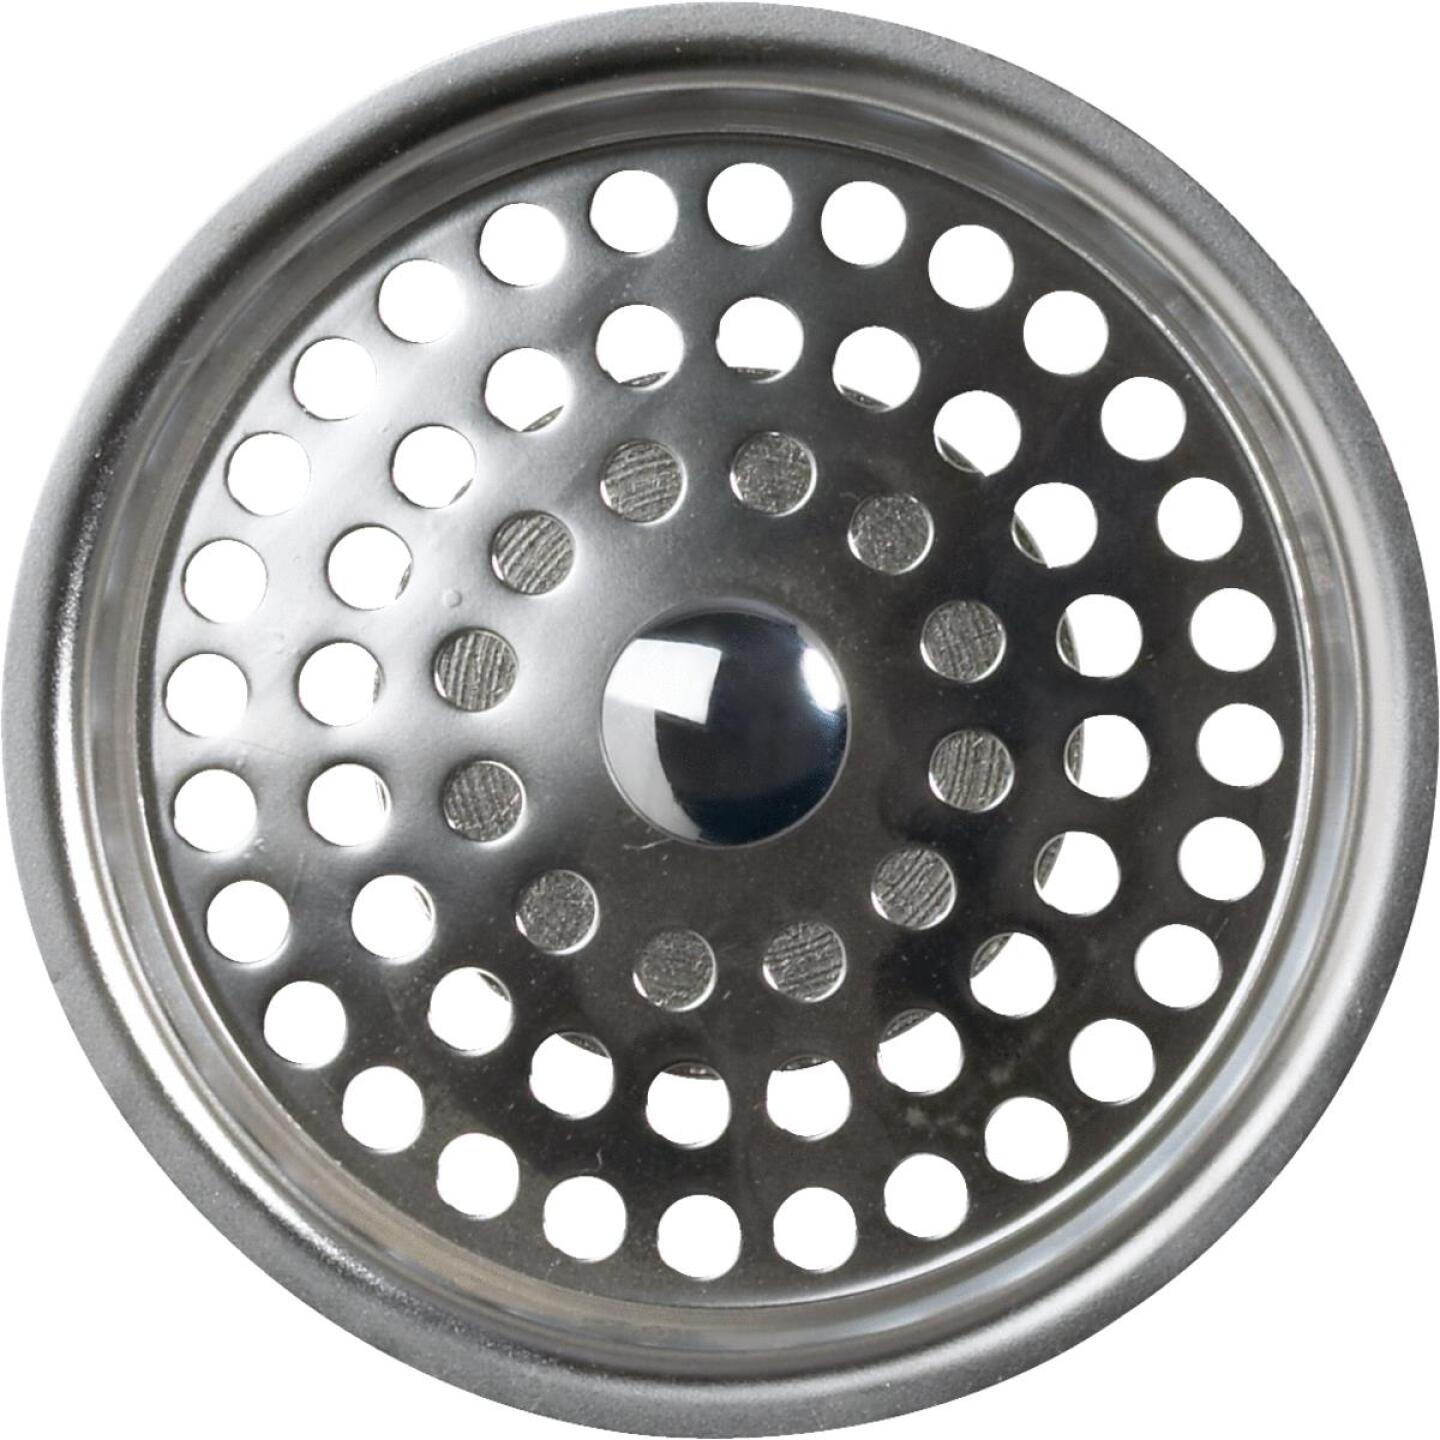 Kohler Duostrainer Basket Strainer Cup in Stainless Steel Image 1